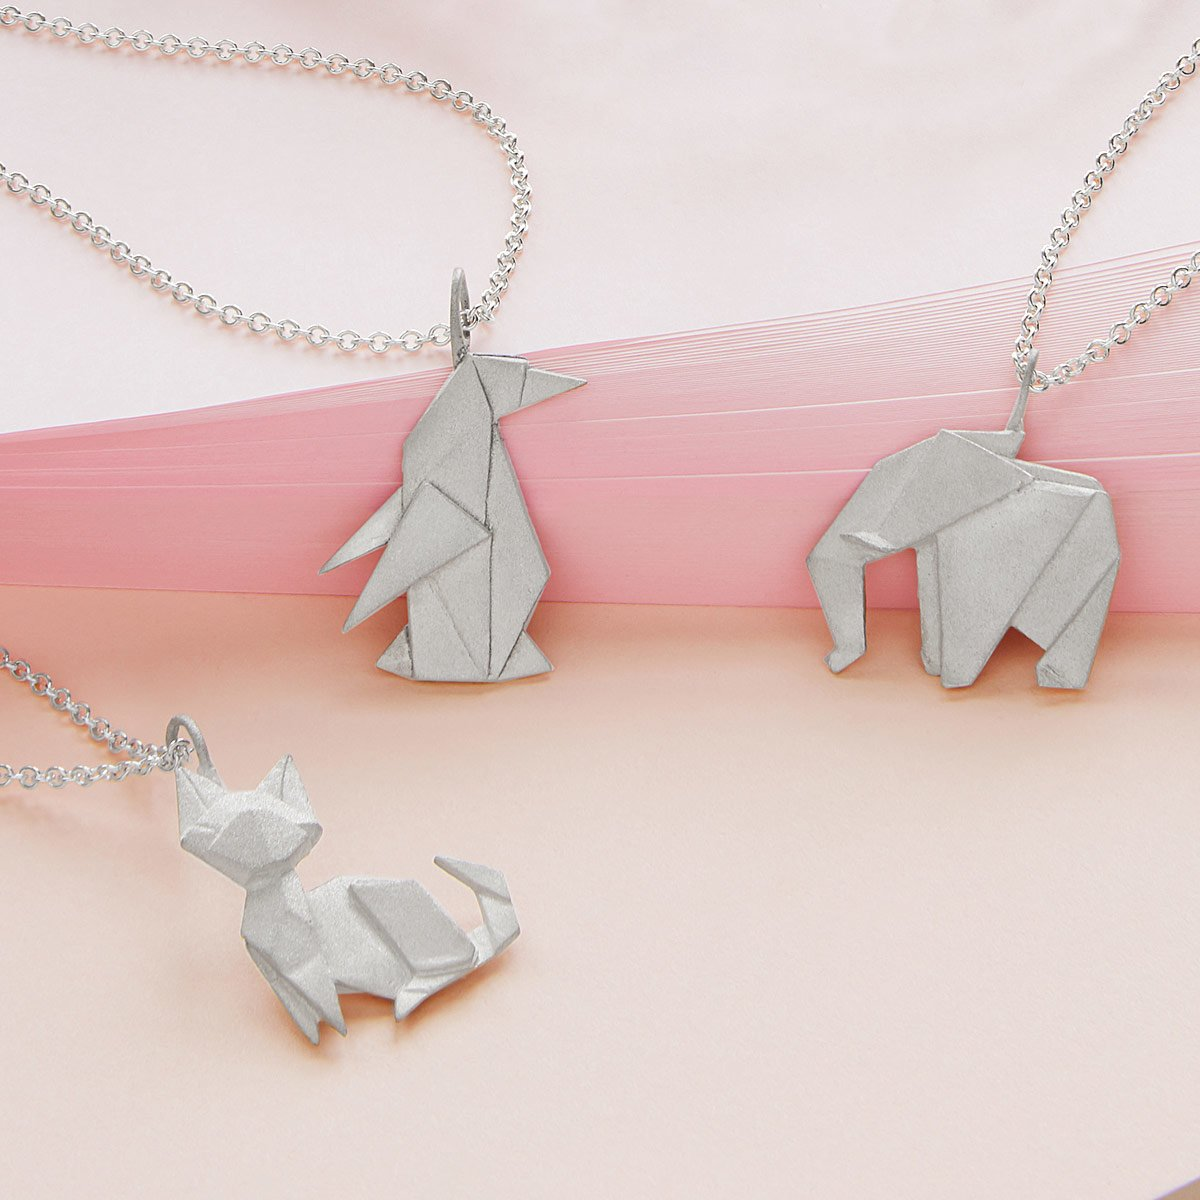 Origami Menagerie Necklaces | UncommonGoods